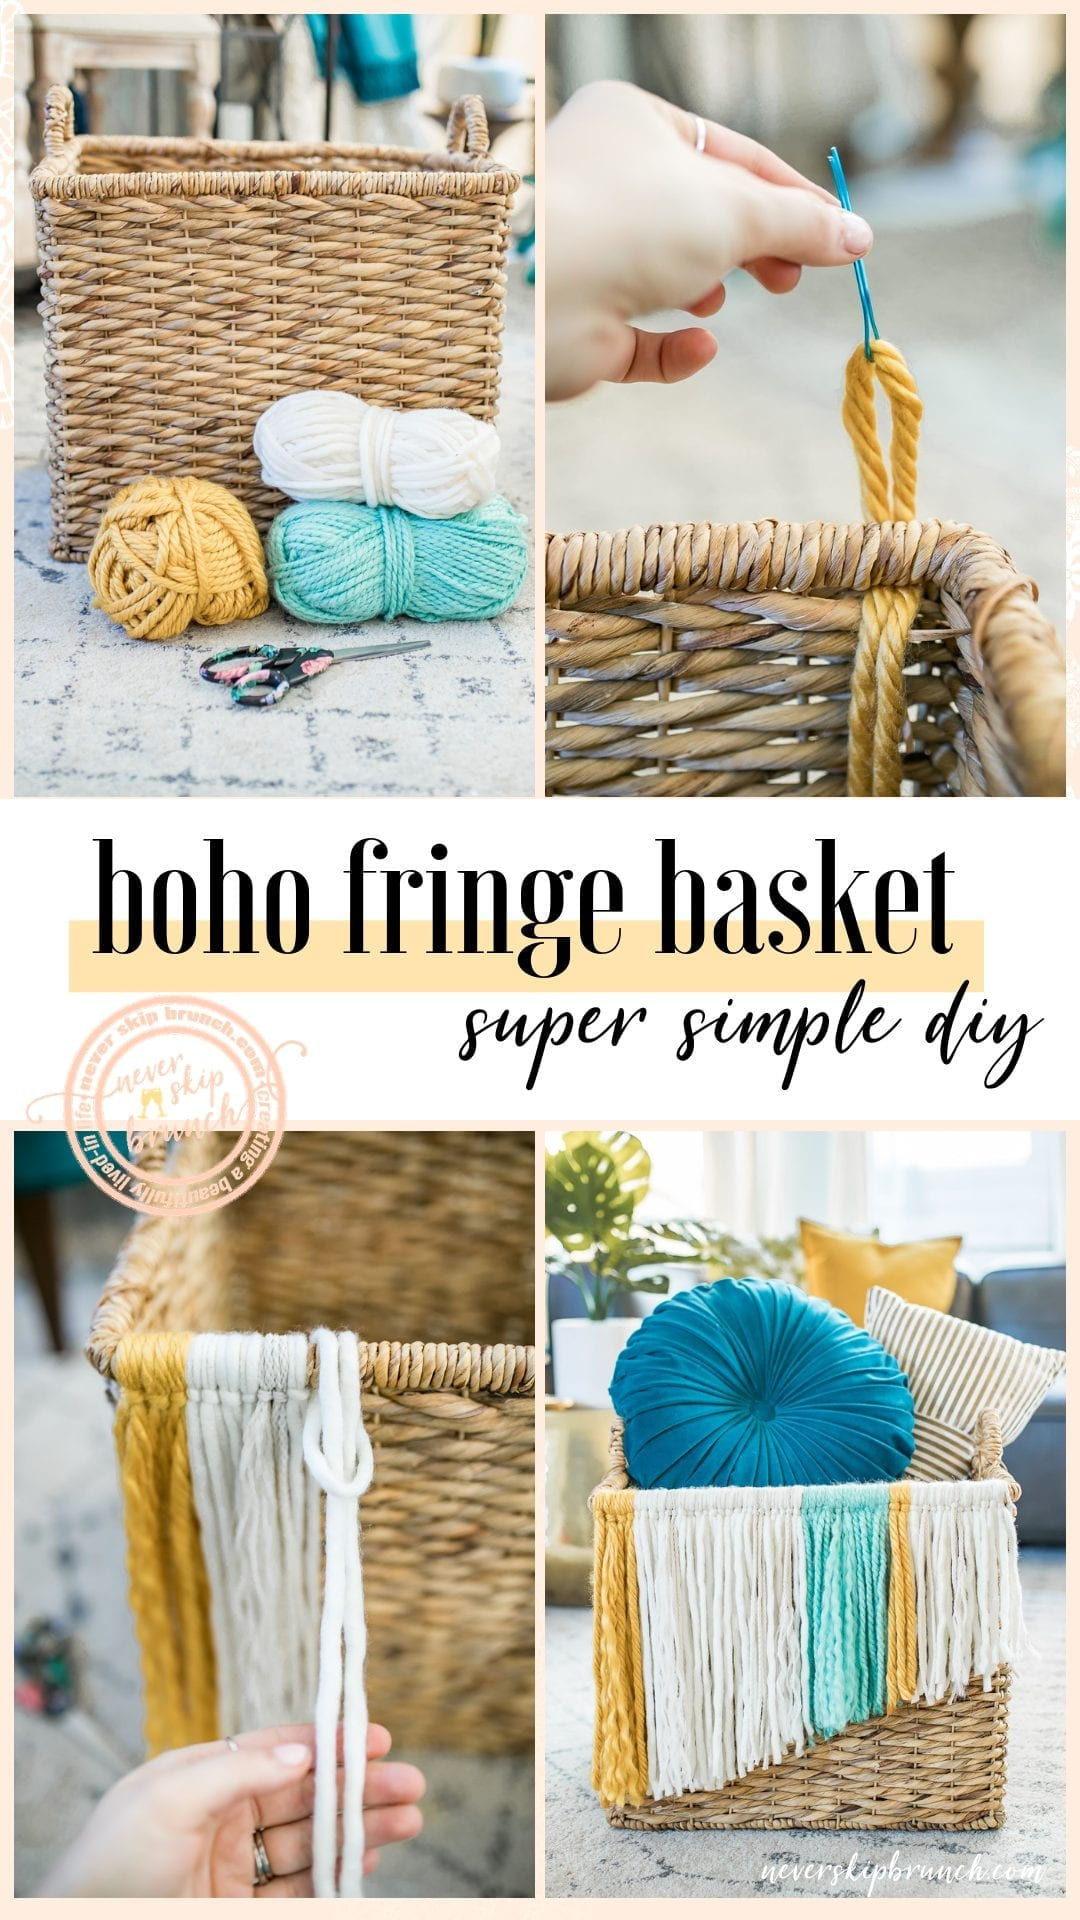 ADORABLE! And SUPER easy!! fringe basket diy | Boho Fringe basket | how to make a fringe basket diy | tassel basket diy | diy boho decor | boho baskets | boho basket DIY » Never Skip Brunch by Cara Newhart #brunch #DIY #boho #decor